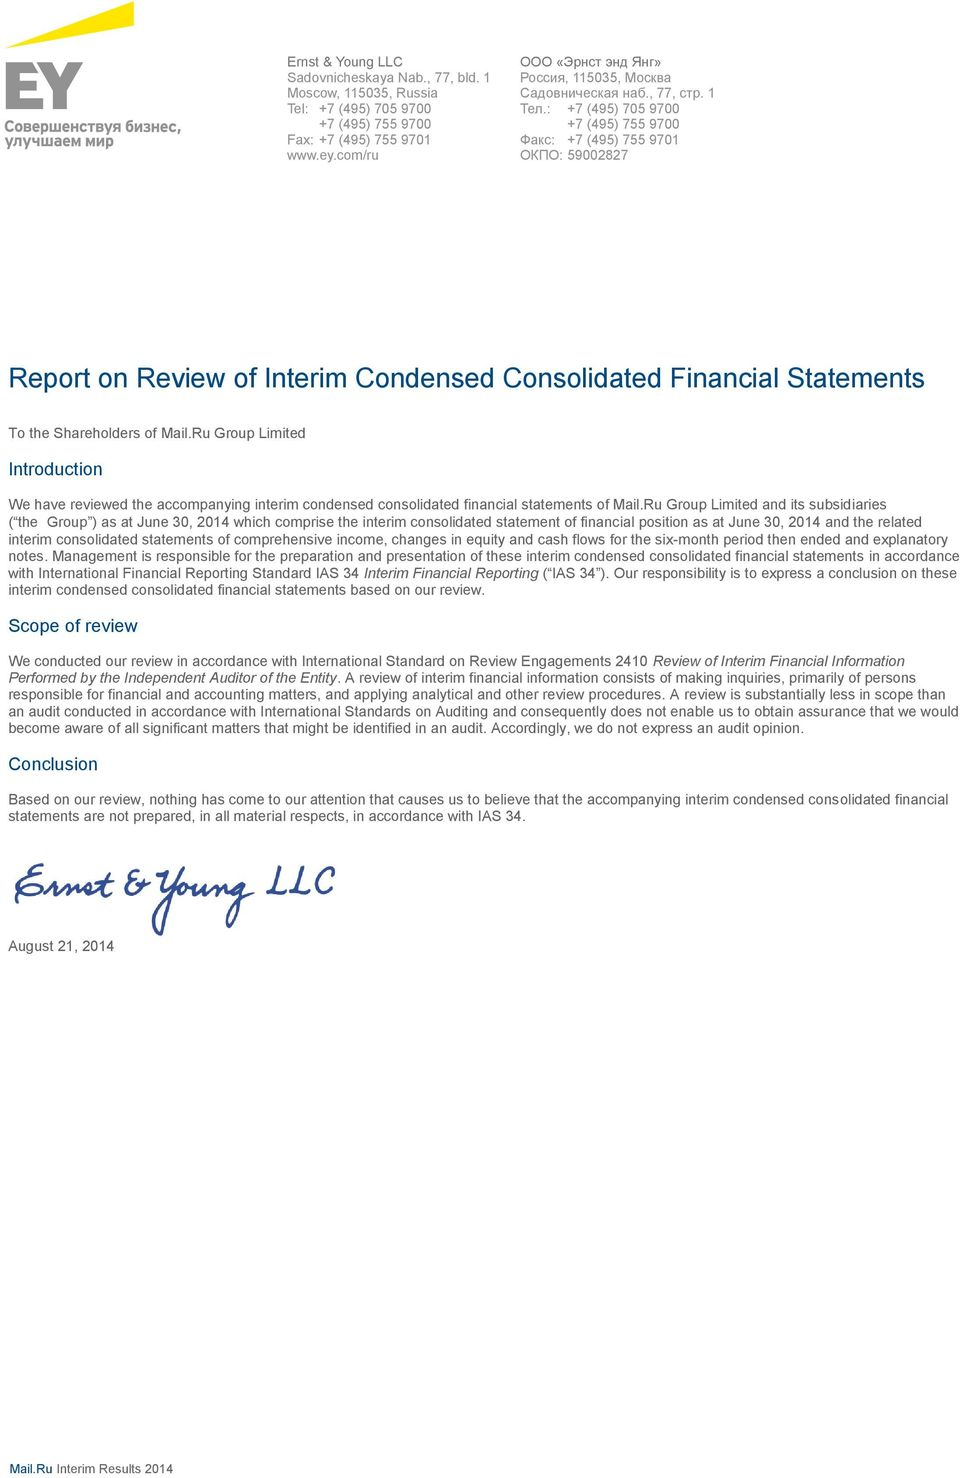 : +7 (495) 705 9700 +7 (495) 755 9700 Факс: +7 (495) 755 9701 ОКПО: 59002827 Report on Review of Interim Condensed Consolidated Financial Statements To the Shareholders of Mail.